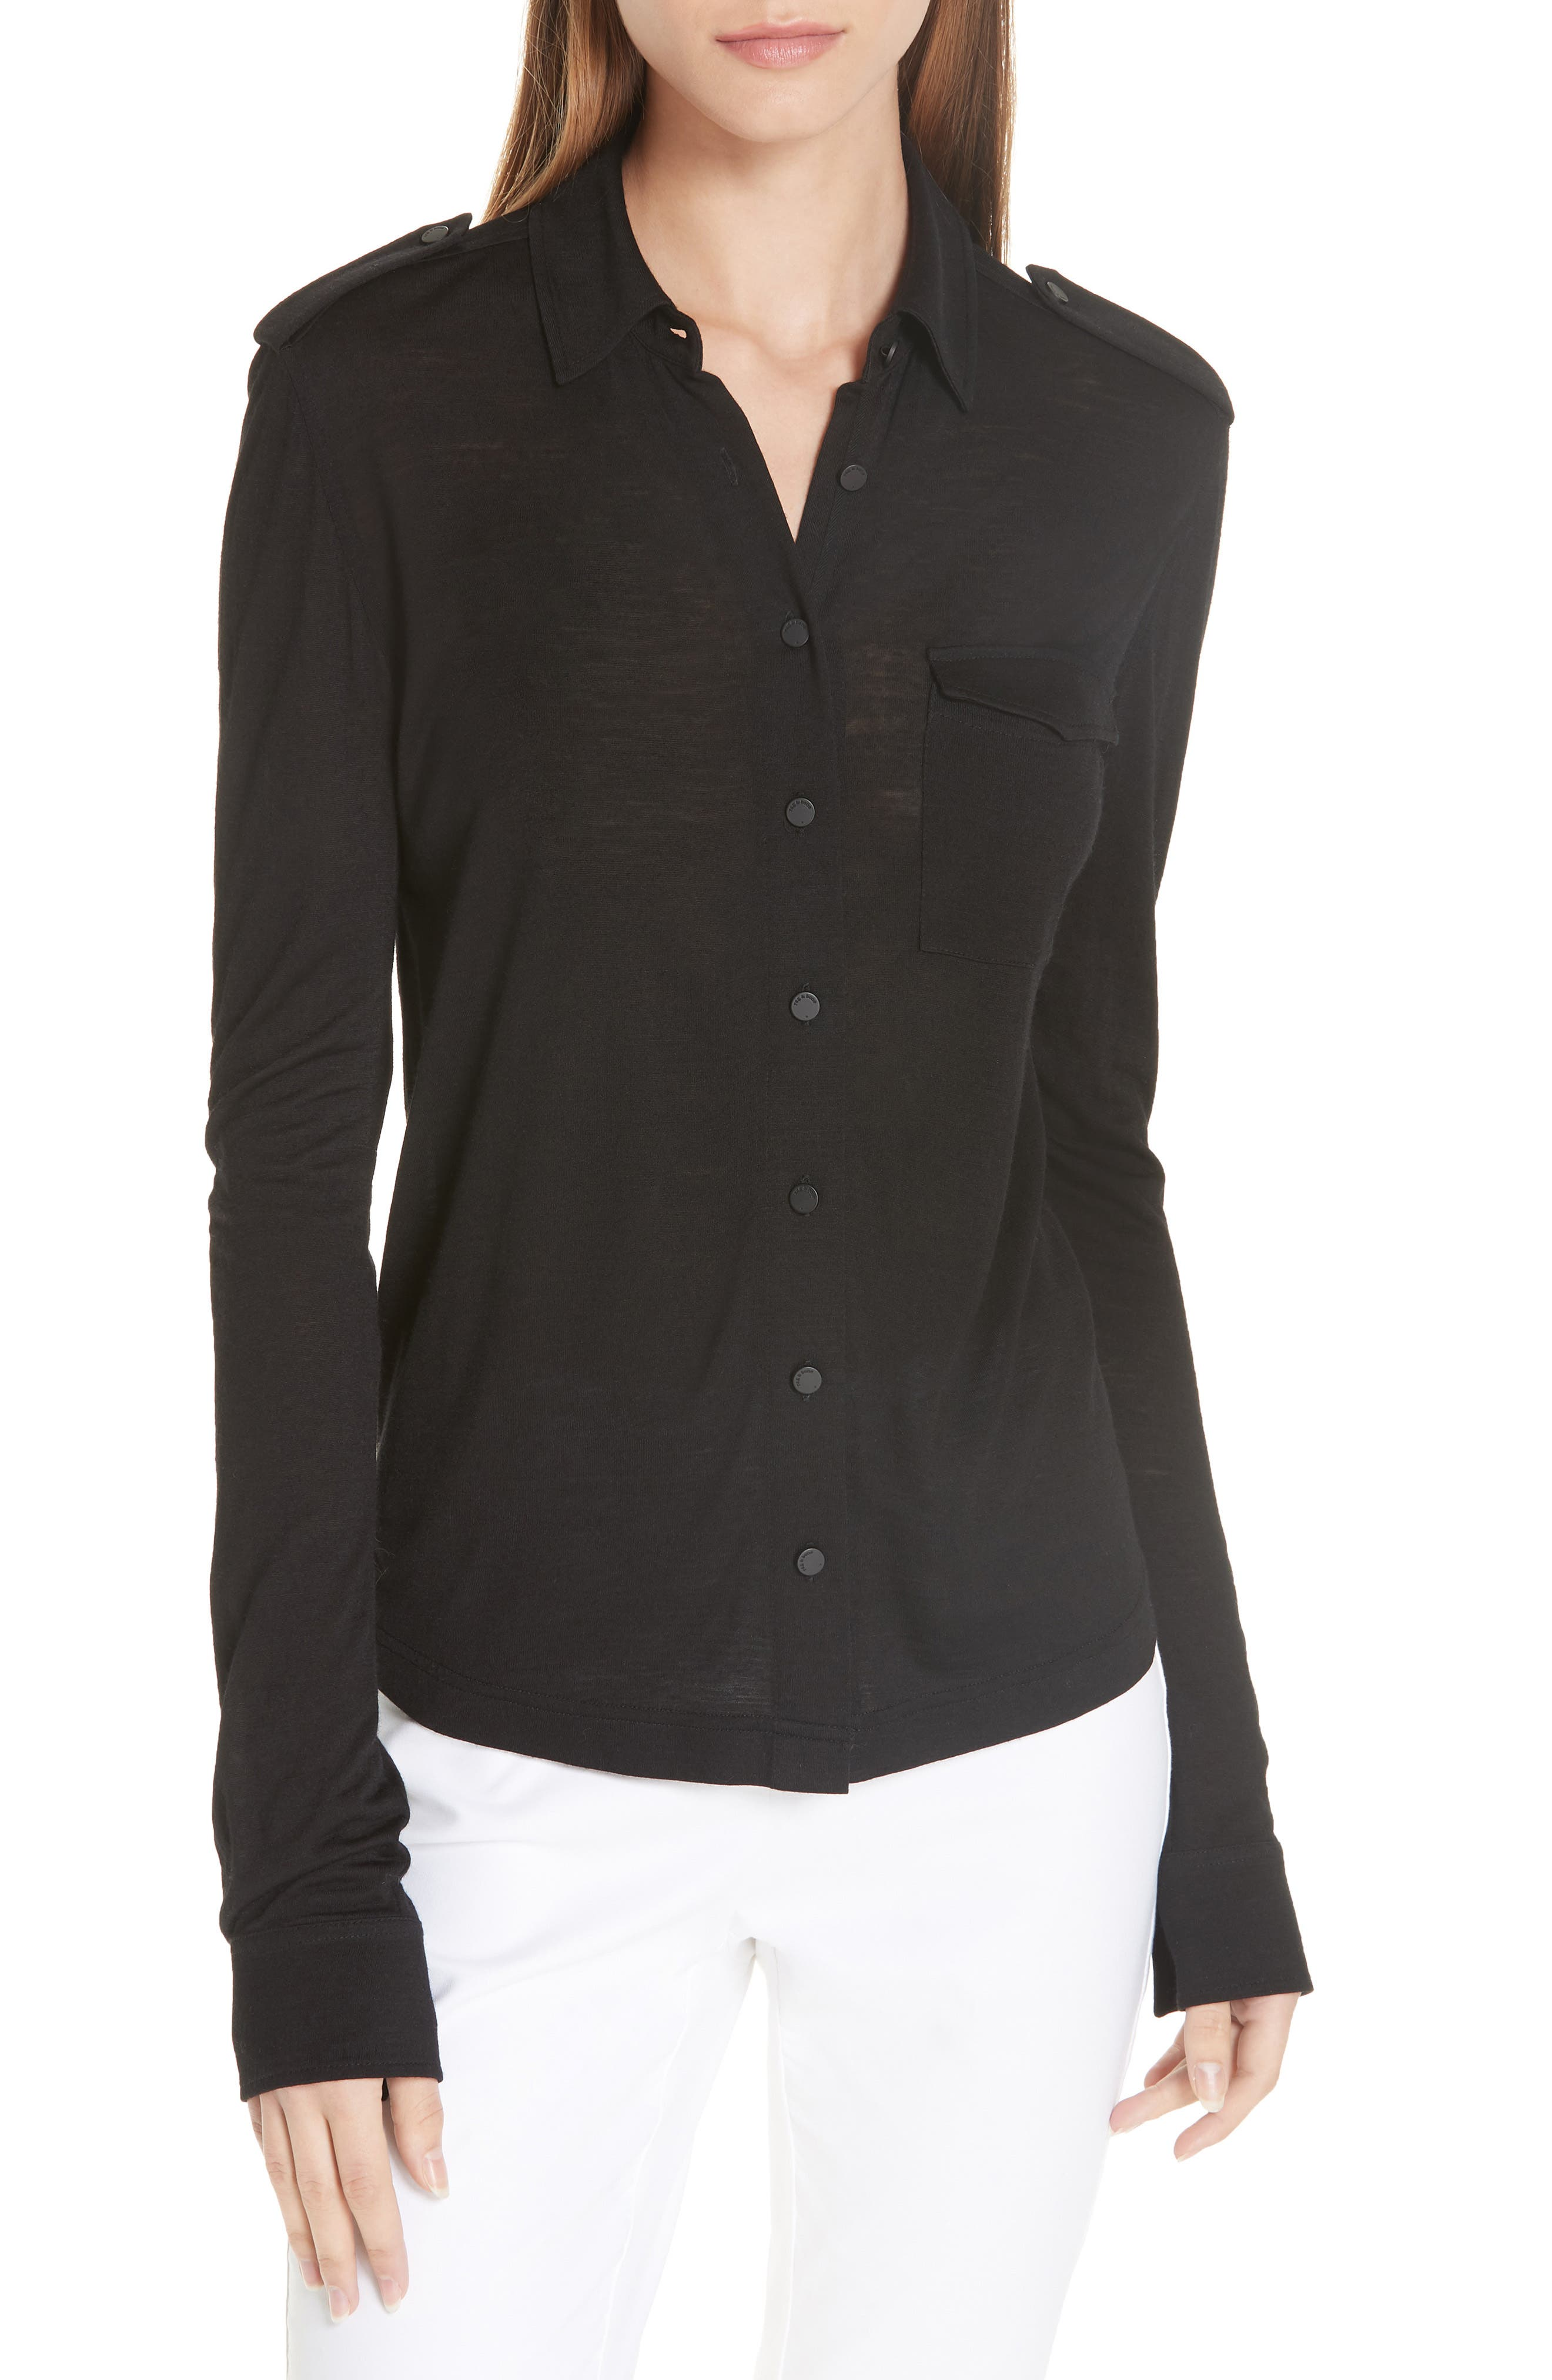 Leyton Button-Front Military Shirt in Black